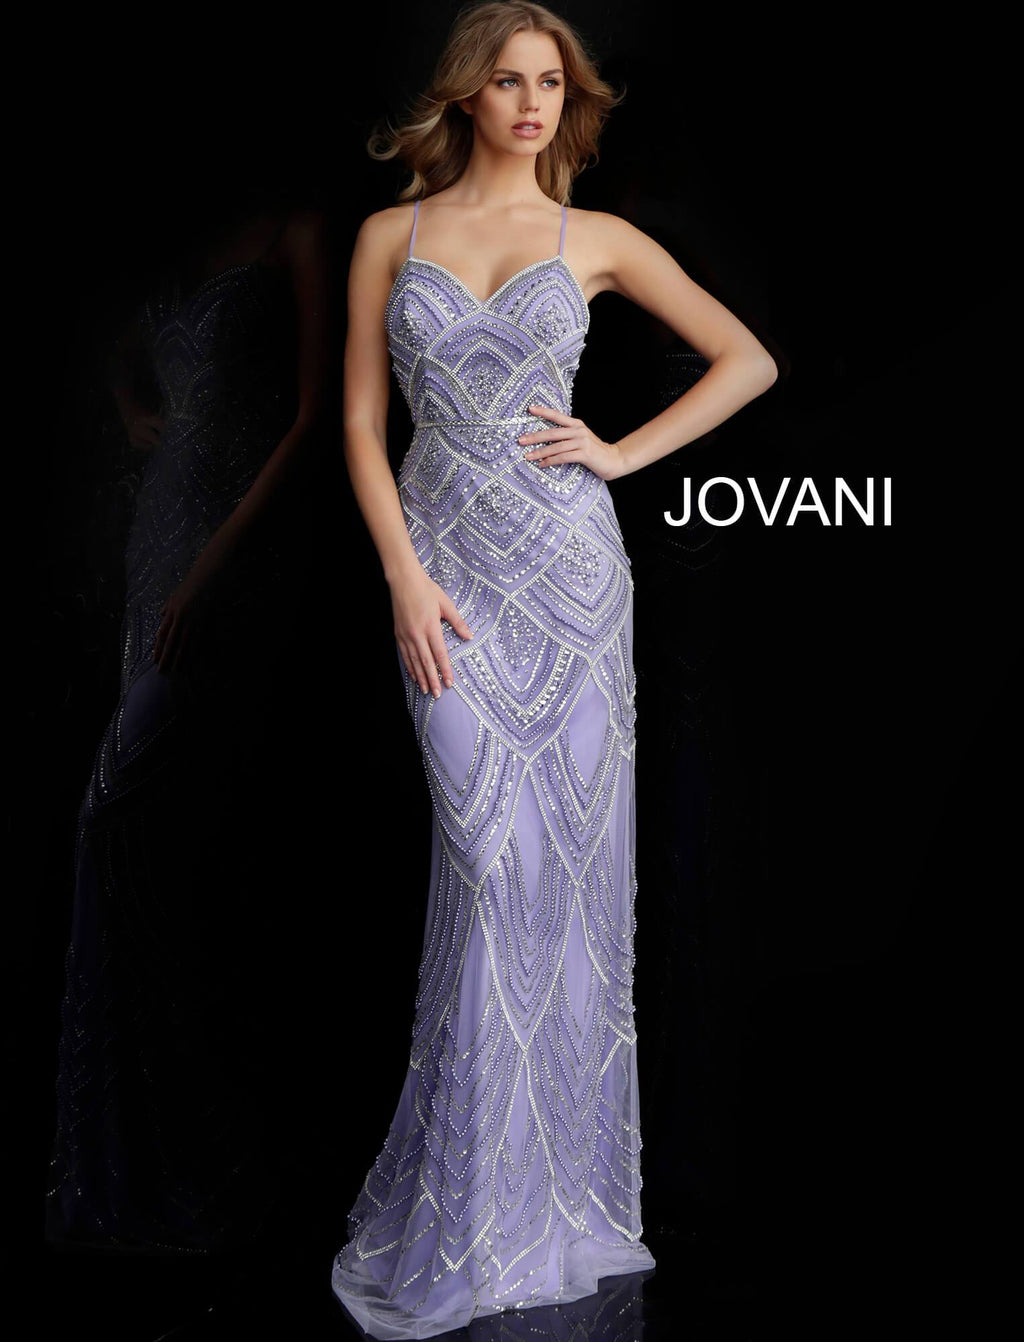 Jovani Lilac Pearl & Crystal Gown